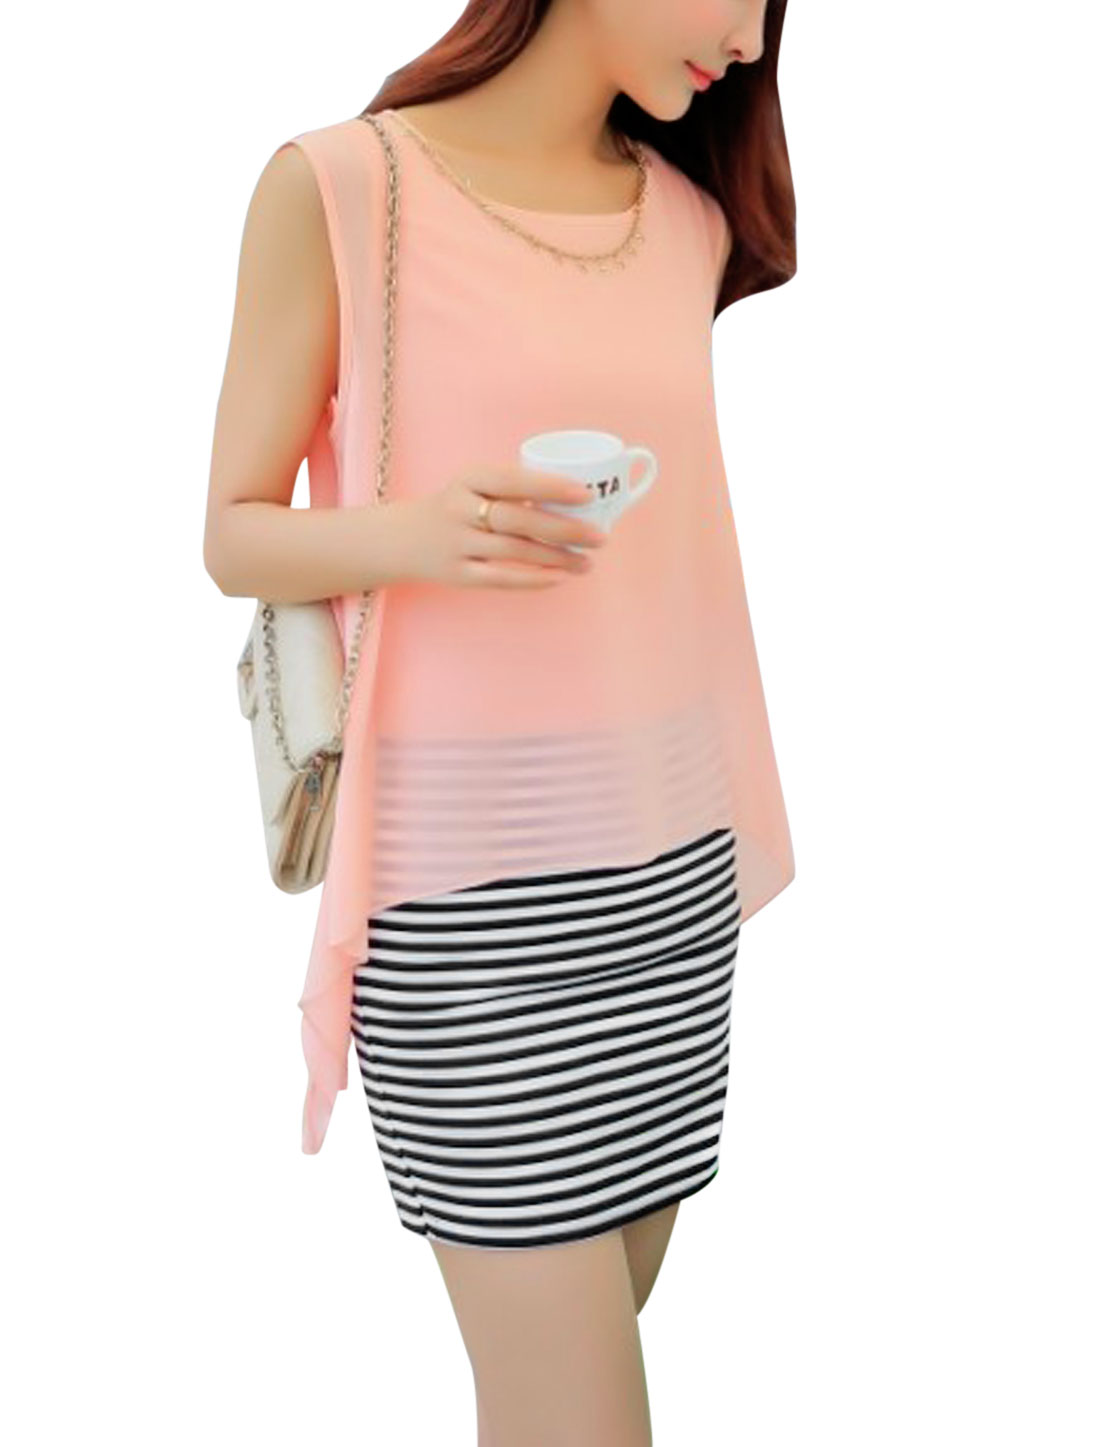 Lady Stripes Pattern Chiffon Panel Design Straight Dress w Necklace Light Pink M